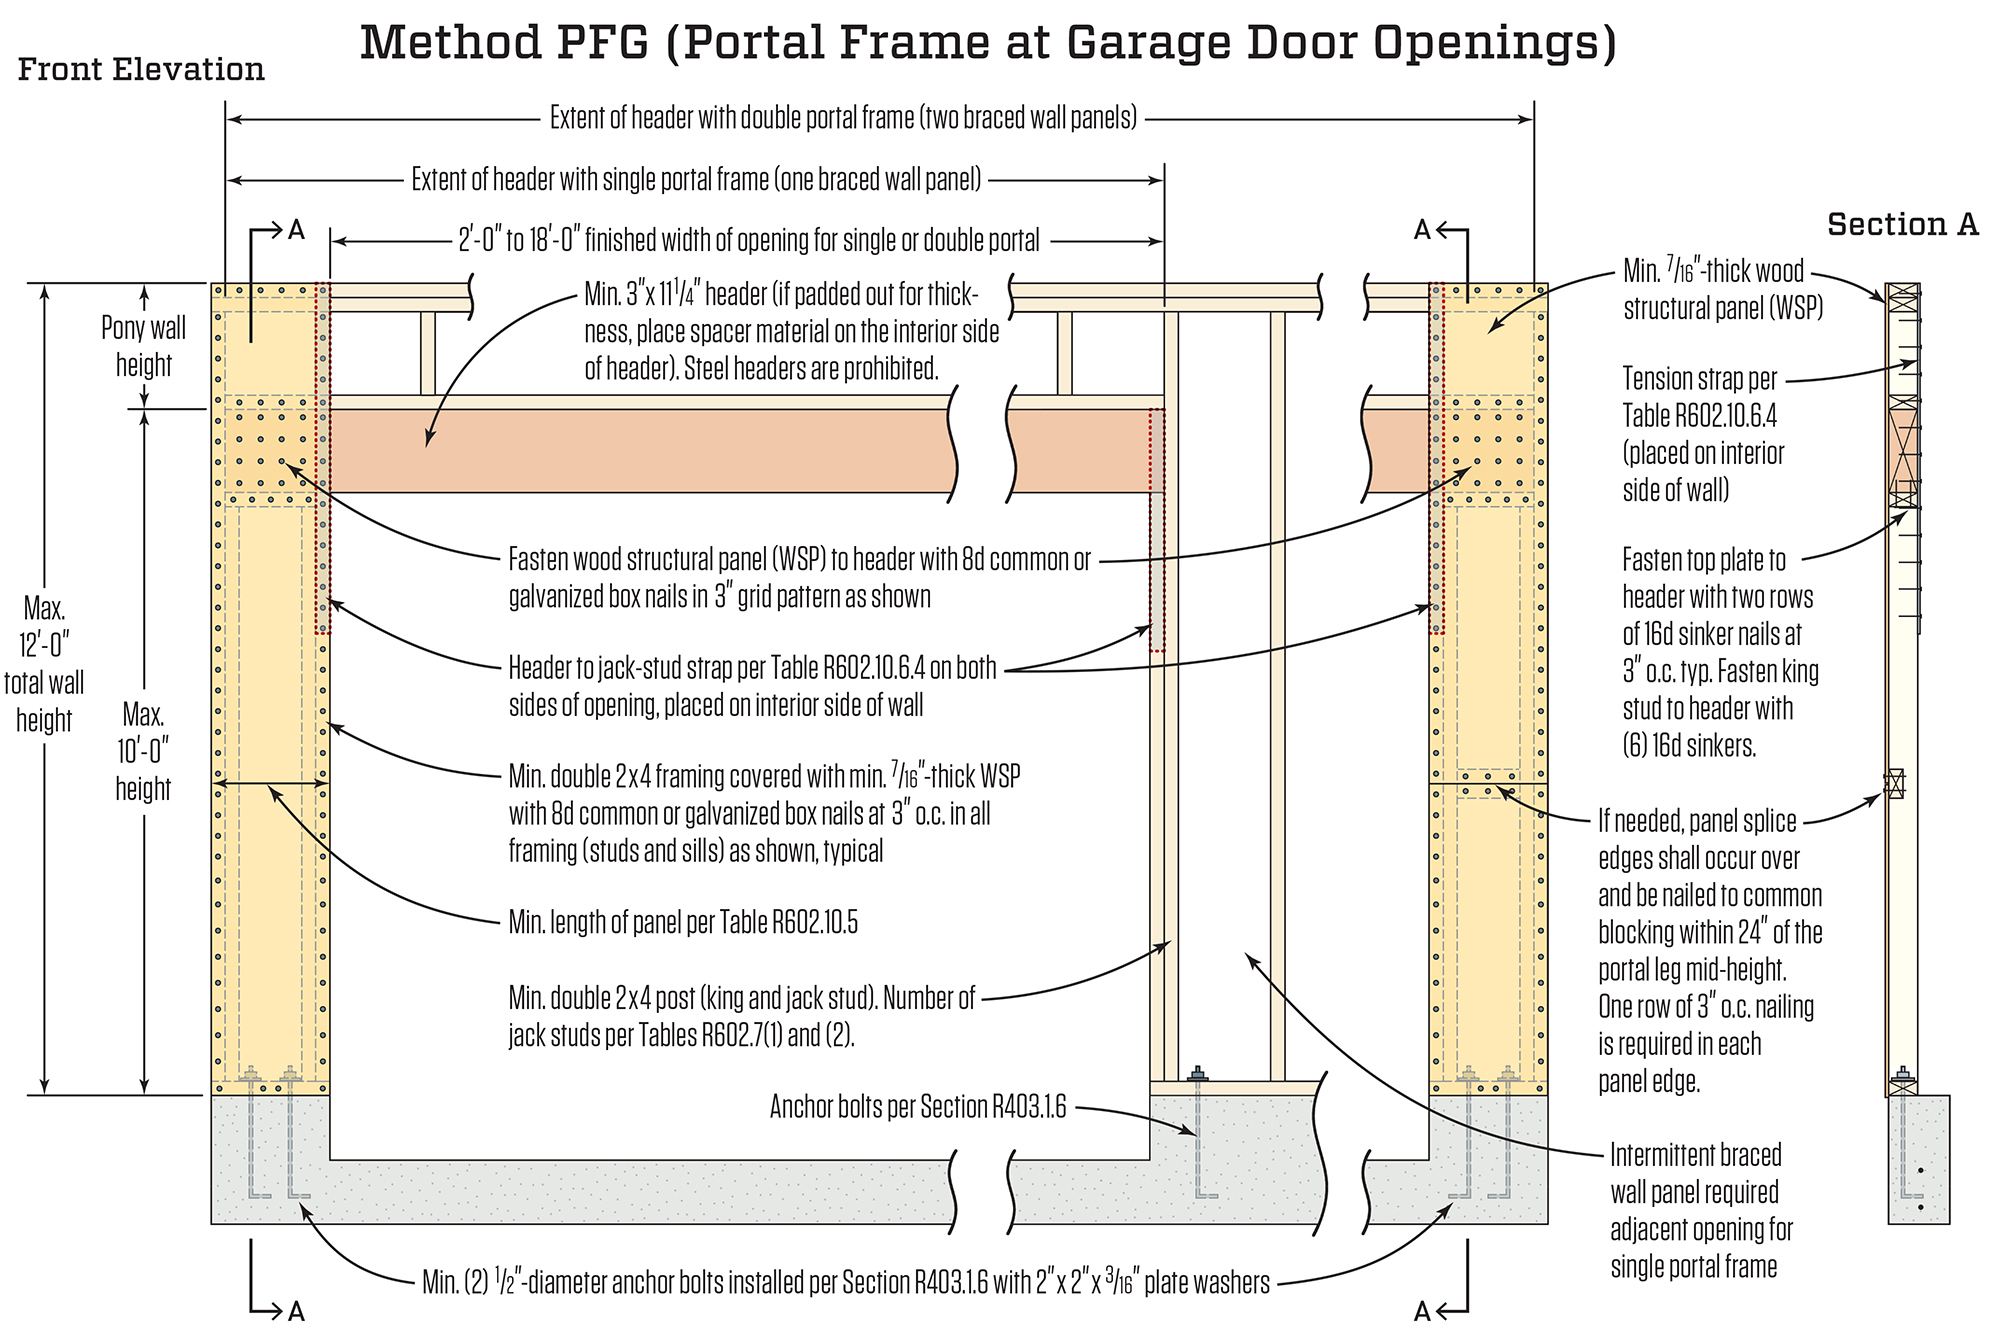 Minimum height of garage door -  Commonly Used To Supply Wall Bracing At Garage Door Openings Supporting Walls May Be As Narrow As 2 Feet In Length Depending On Door Opening Height